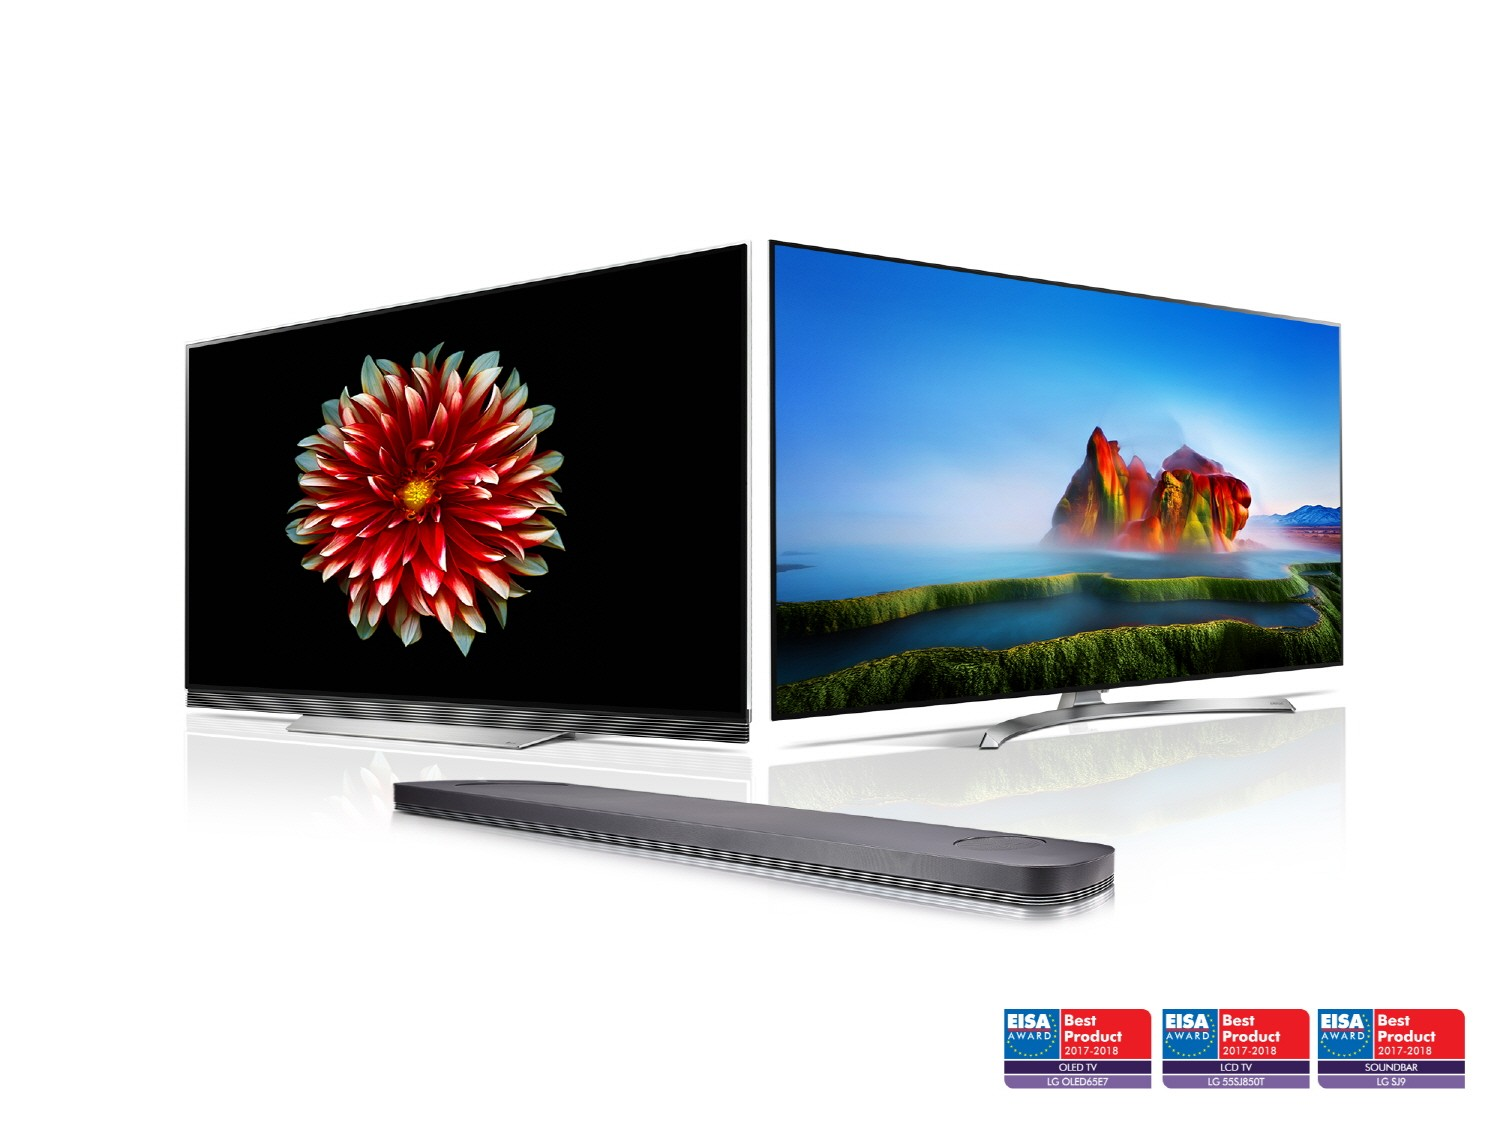 lg oled tv again takes top honors at eisa awards lg newsroom. Black Bedroom Furniture Sets. Home Design Ideas